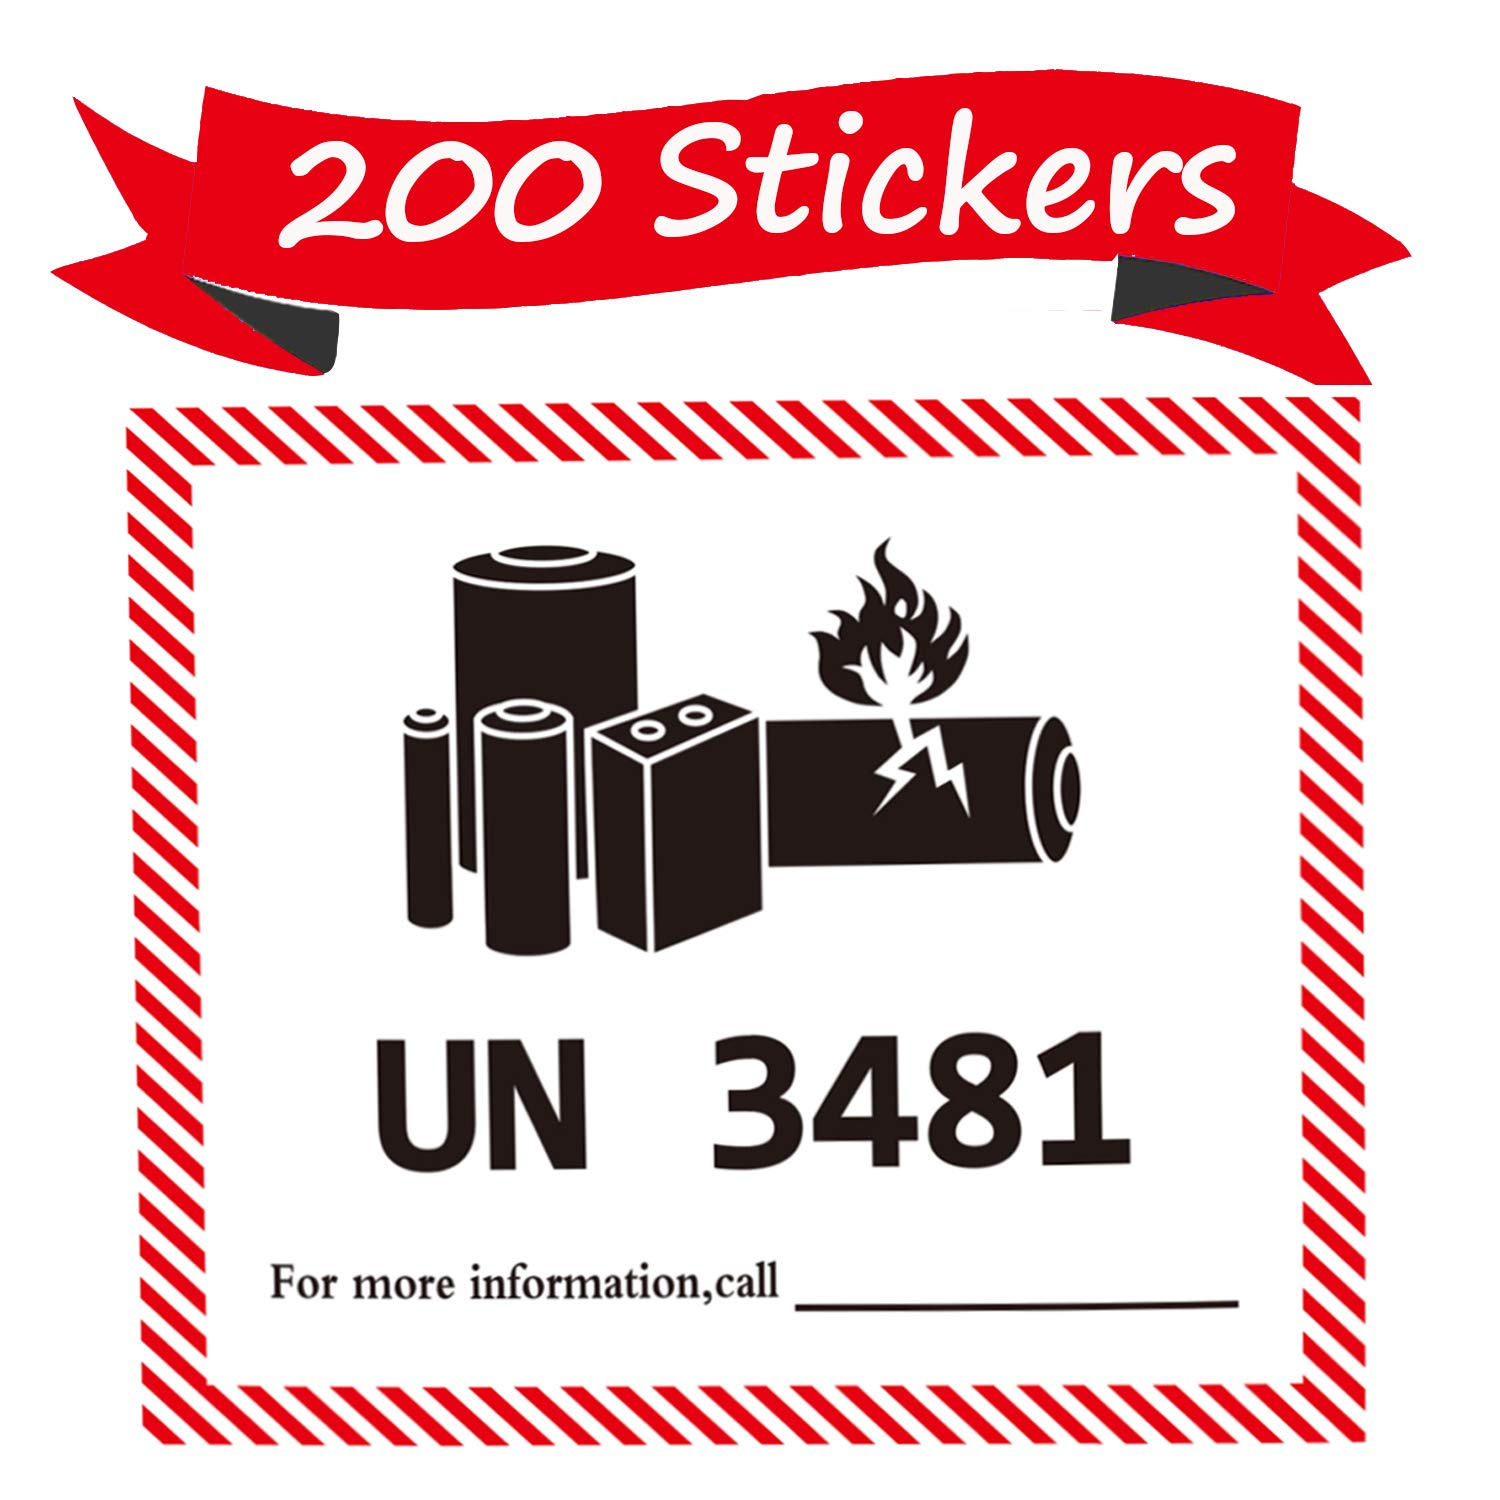 UN 3481 Lithium Battery Labels 4.72 x 4.33 inch Lithium Ion Battery Transport Caution Warning Labels 200 Adhesive Stickers by Pop Resin